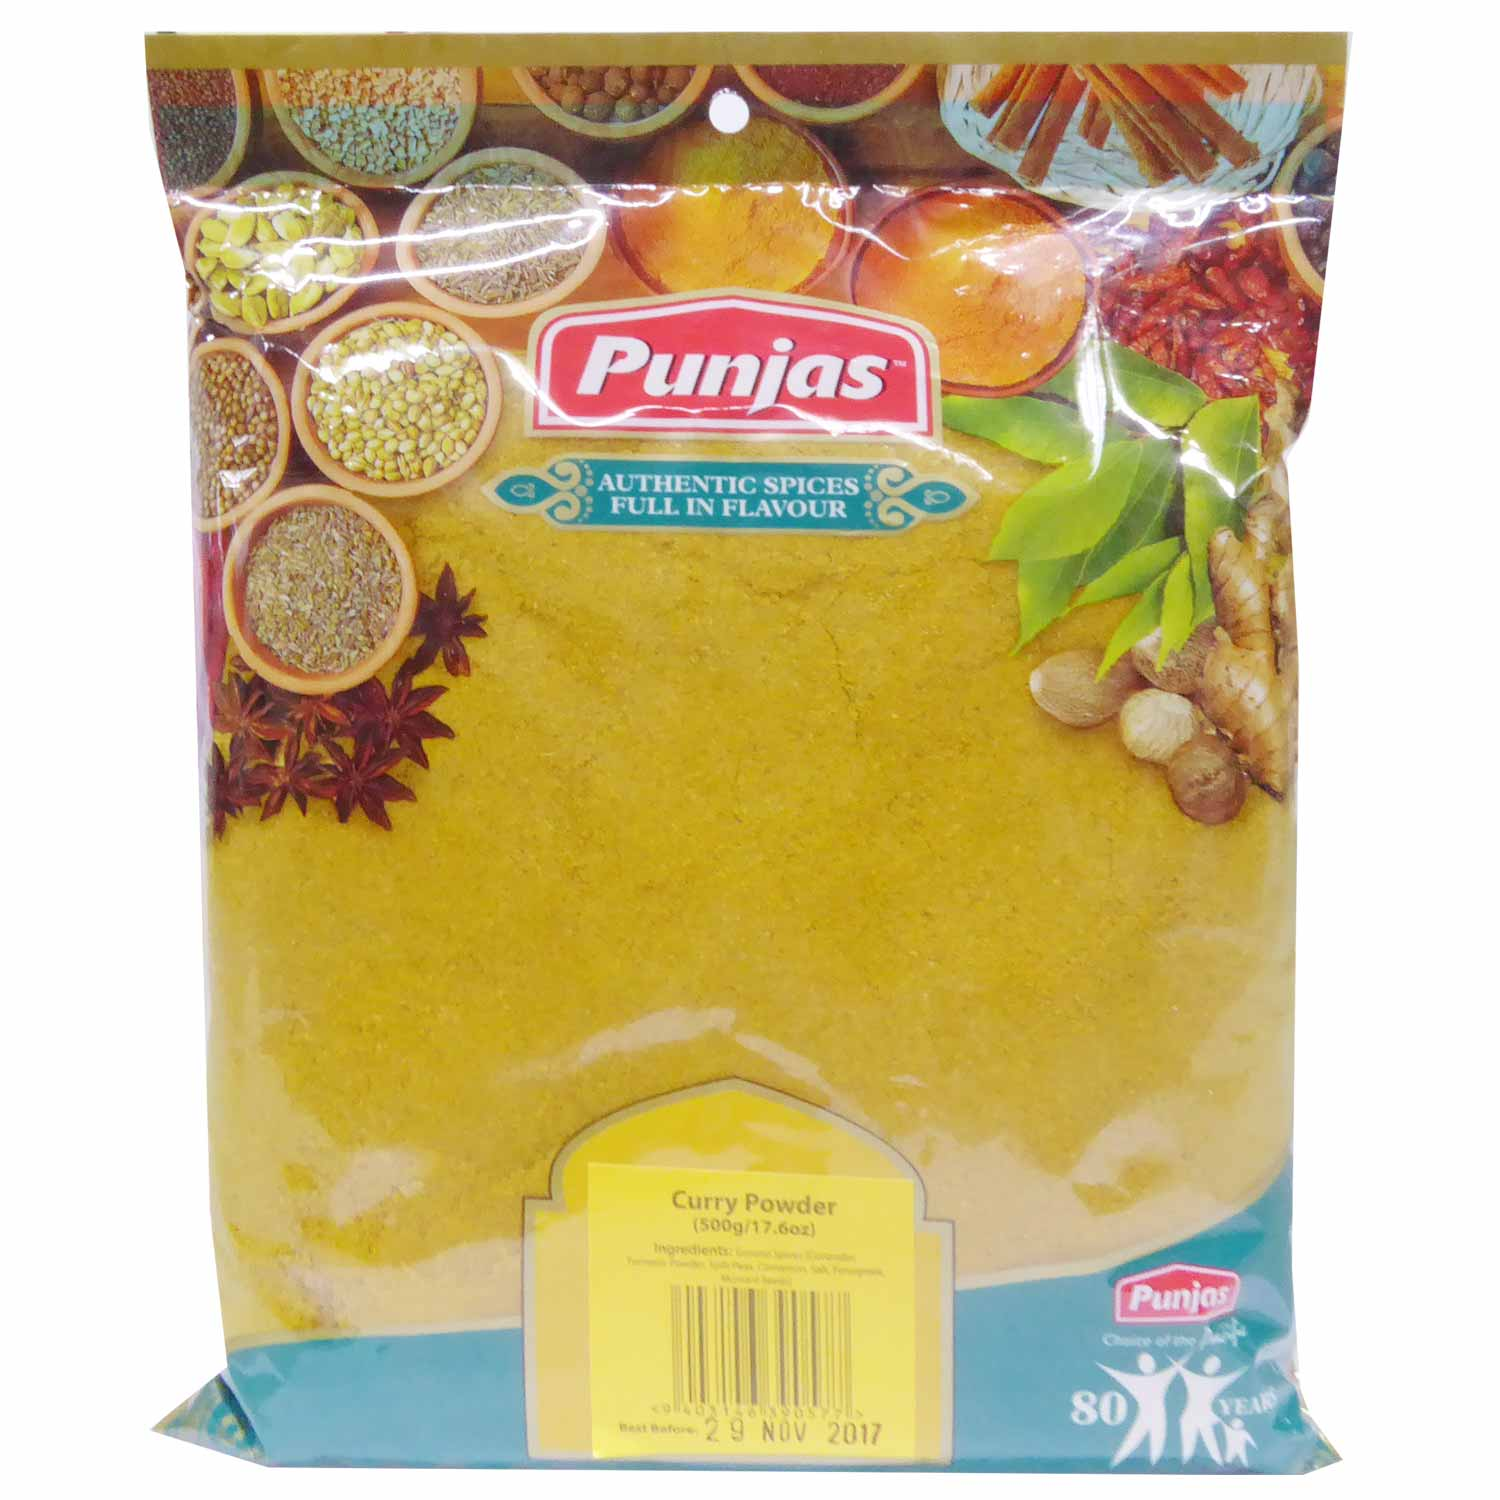 Punjas Curry Powder 500g